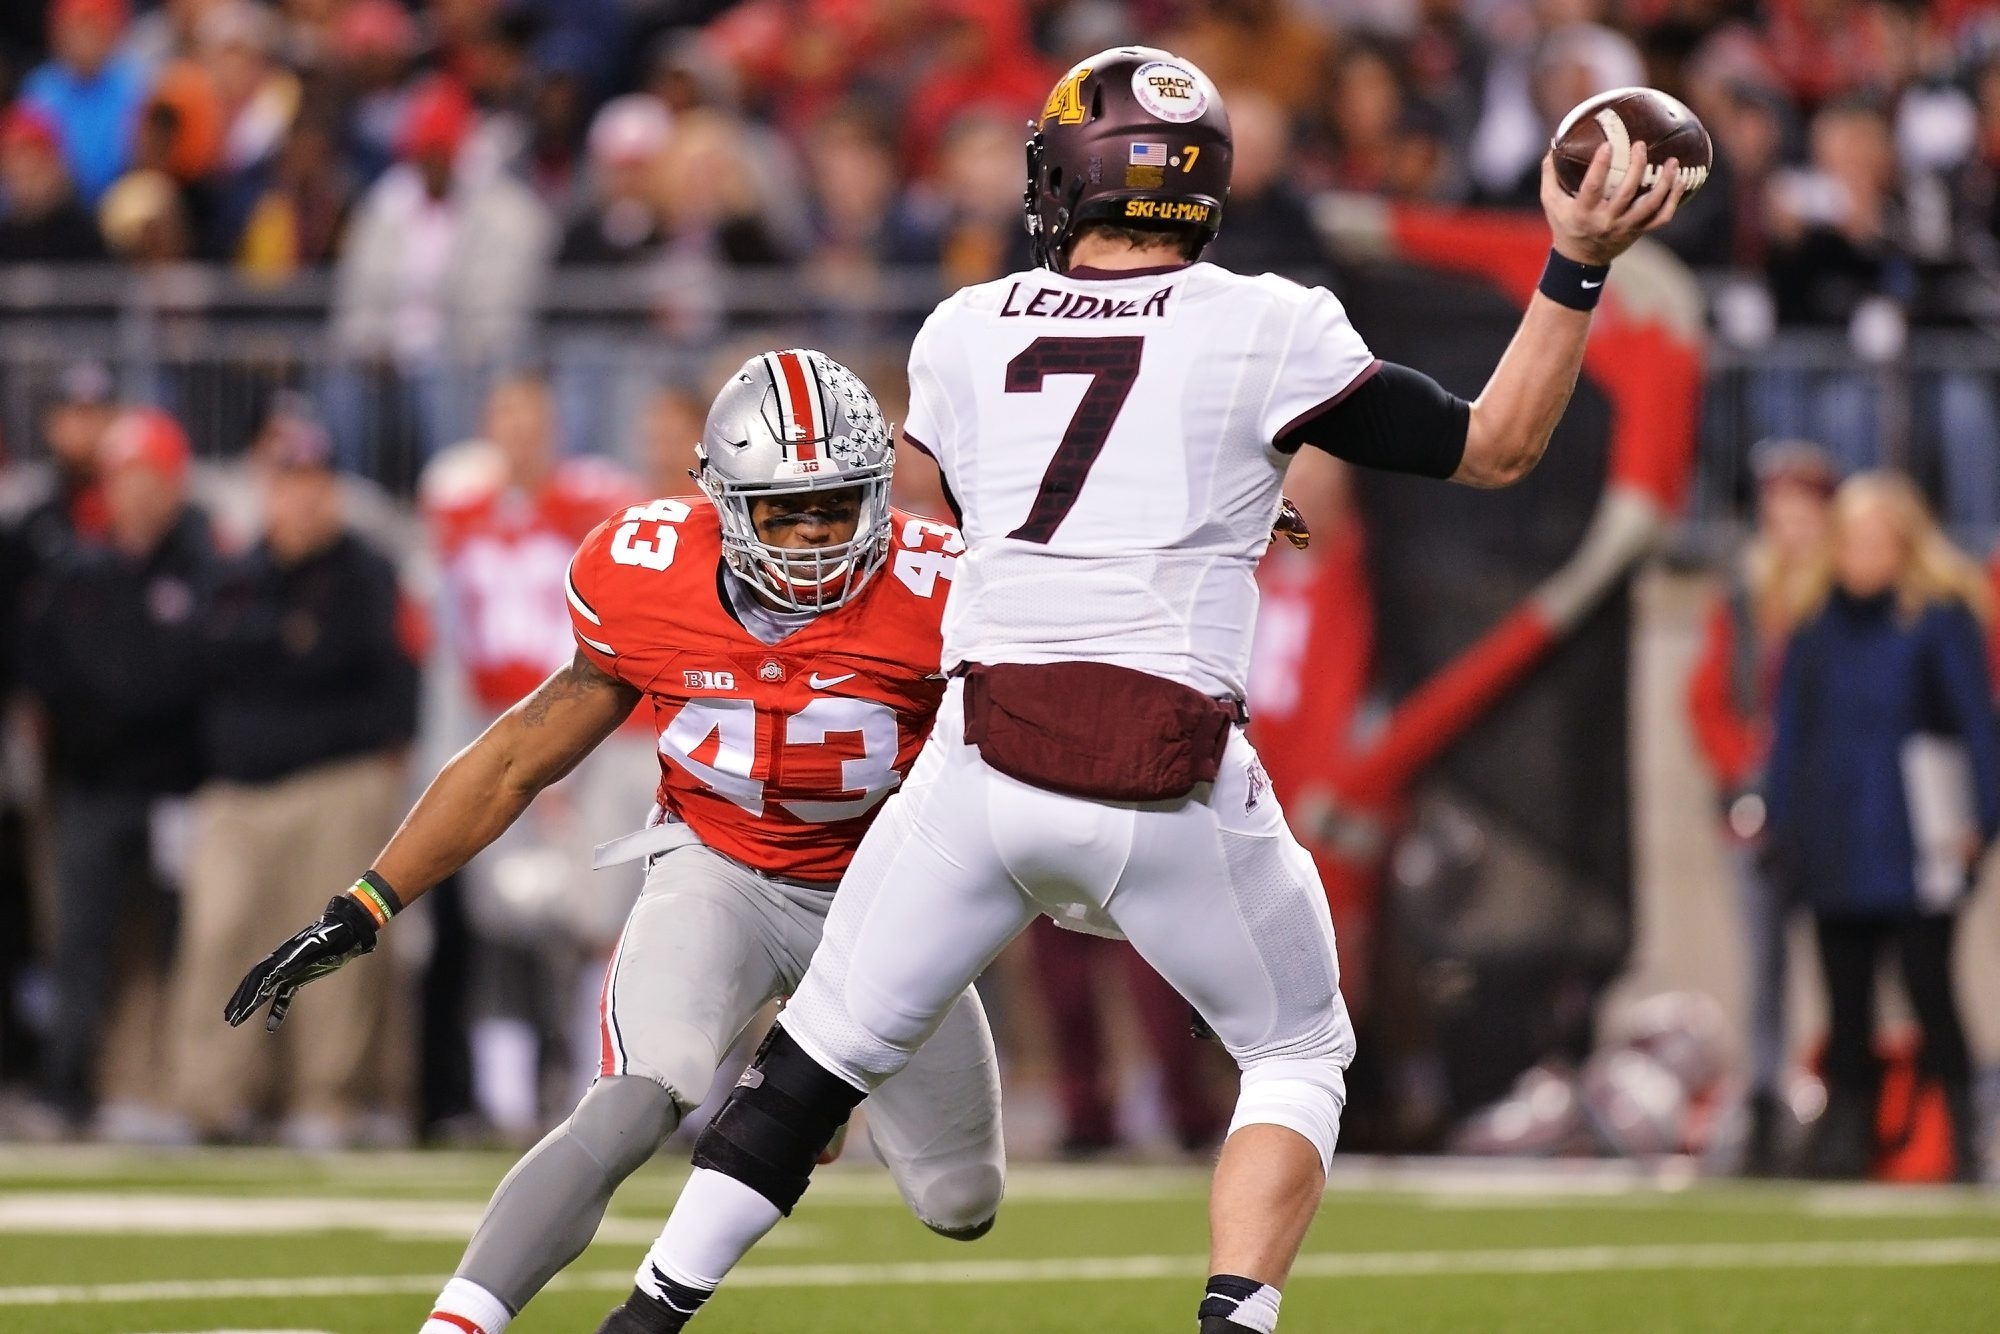 Darron Lee played two seasons at Ohio State and in that time the Buckeyes had a 26-2 record and one national title.